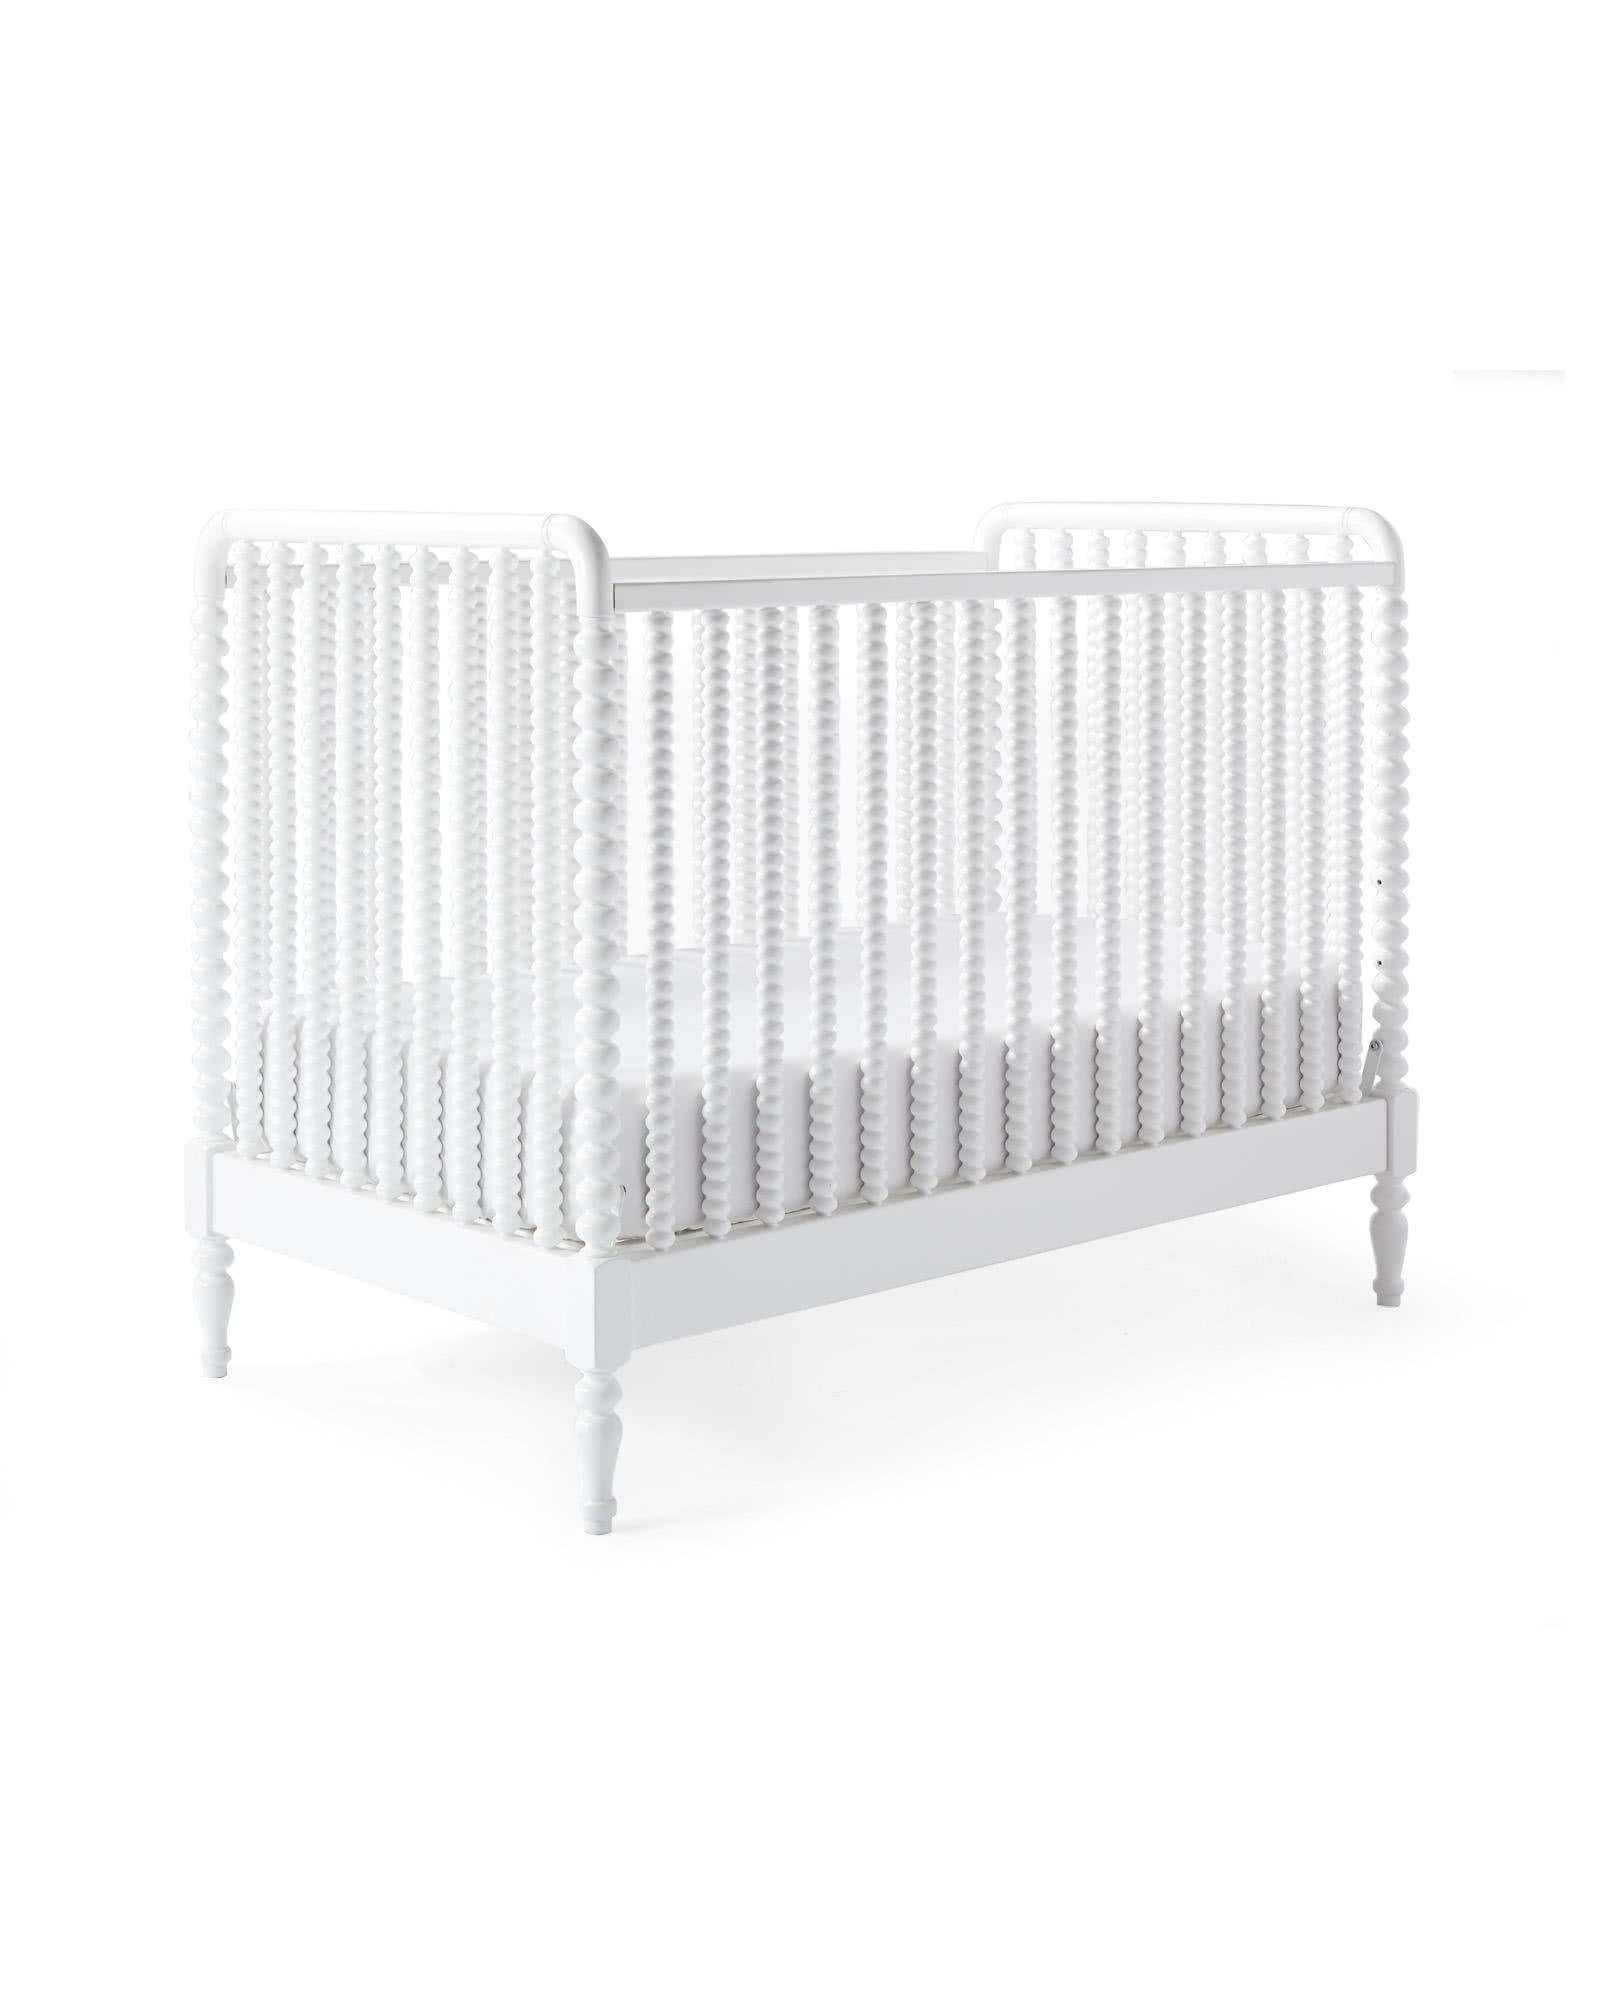 Webster Convertible Crib,